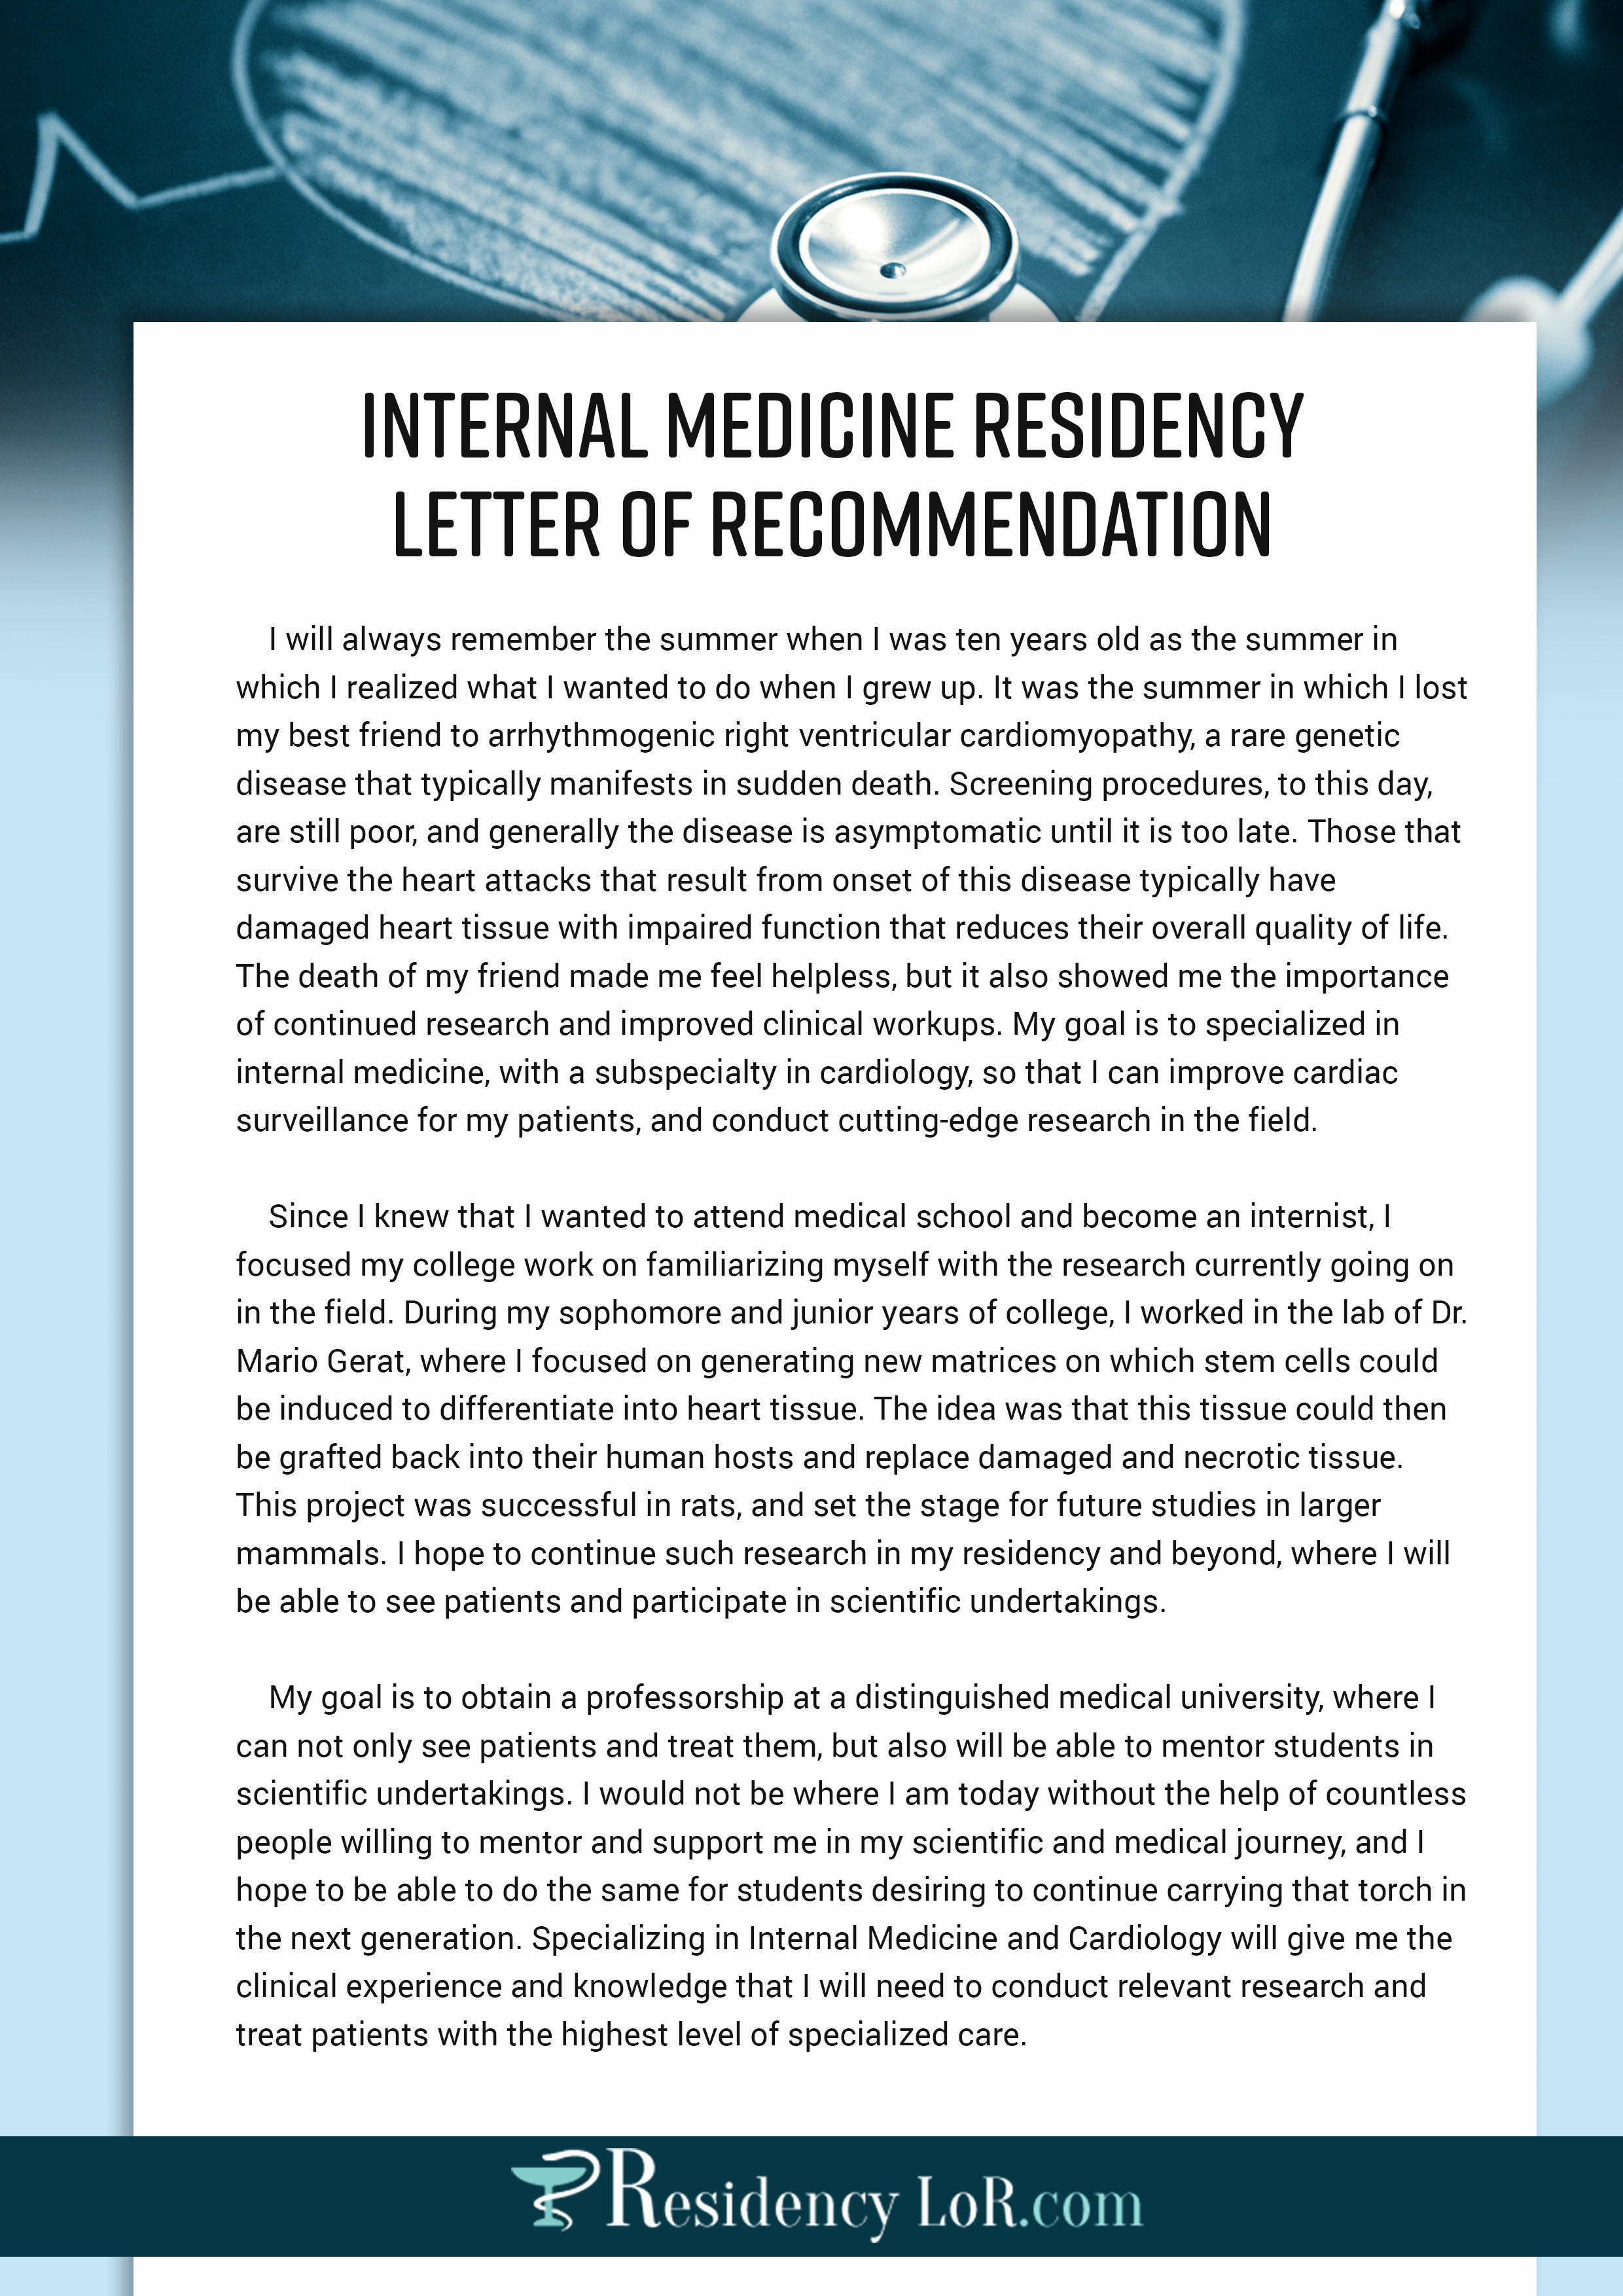 Letter Of Recommendation Medical Residency Fresh Sample Letter Of Re Mendation for Internal Medicine